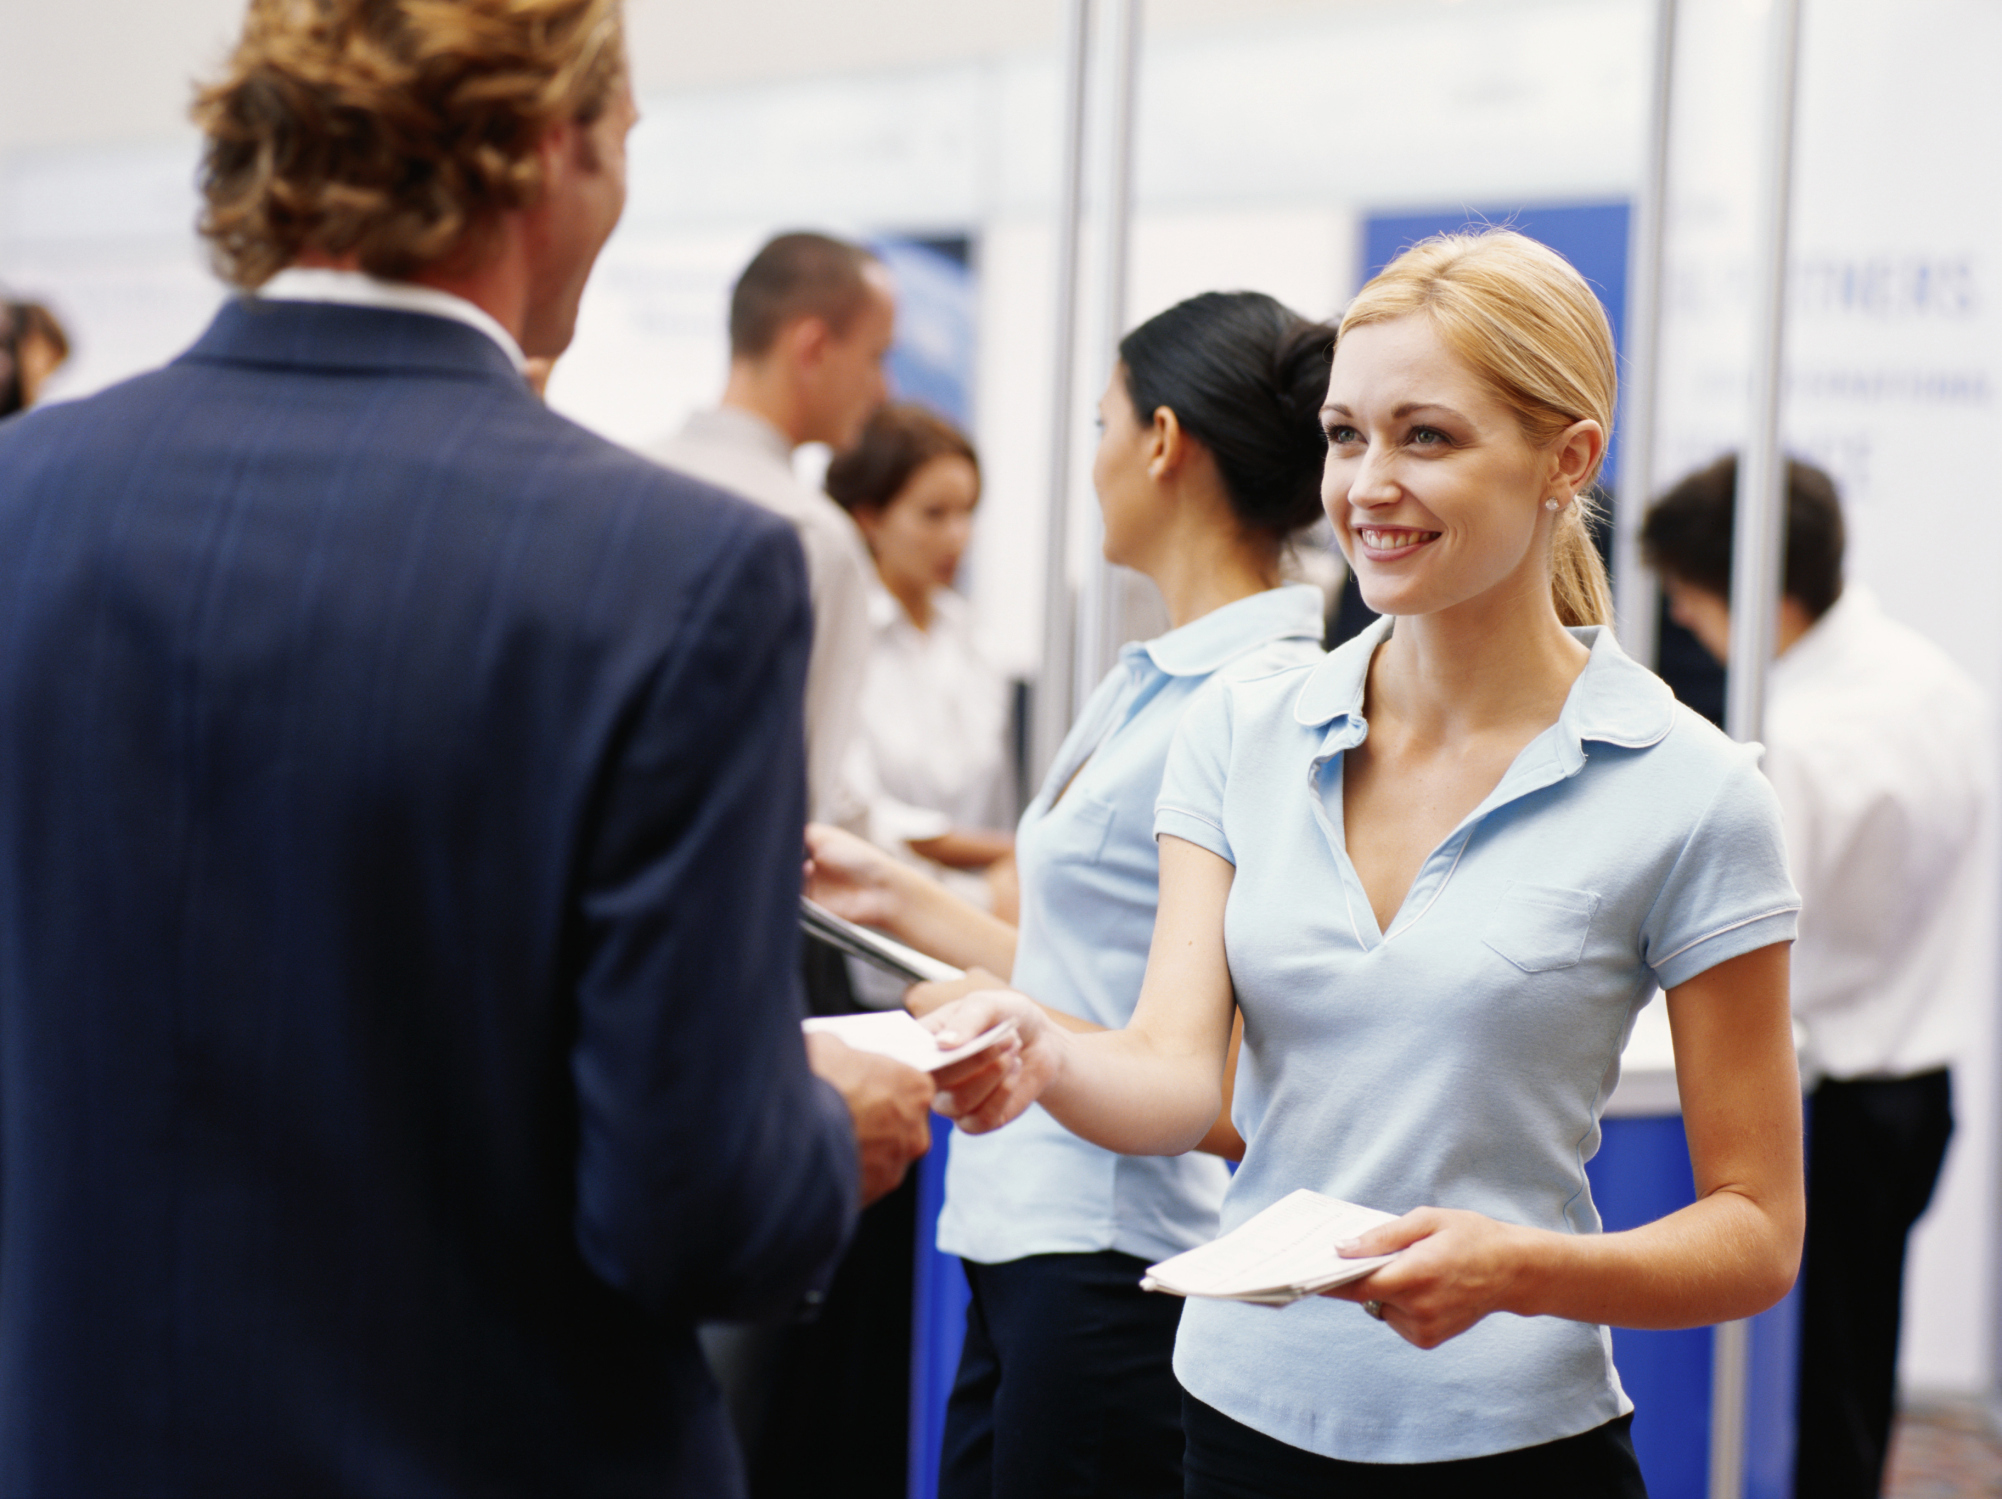 Excellent Custom Service At Trade Shows